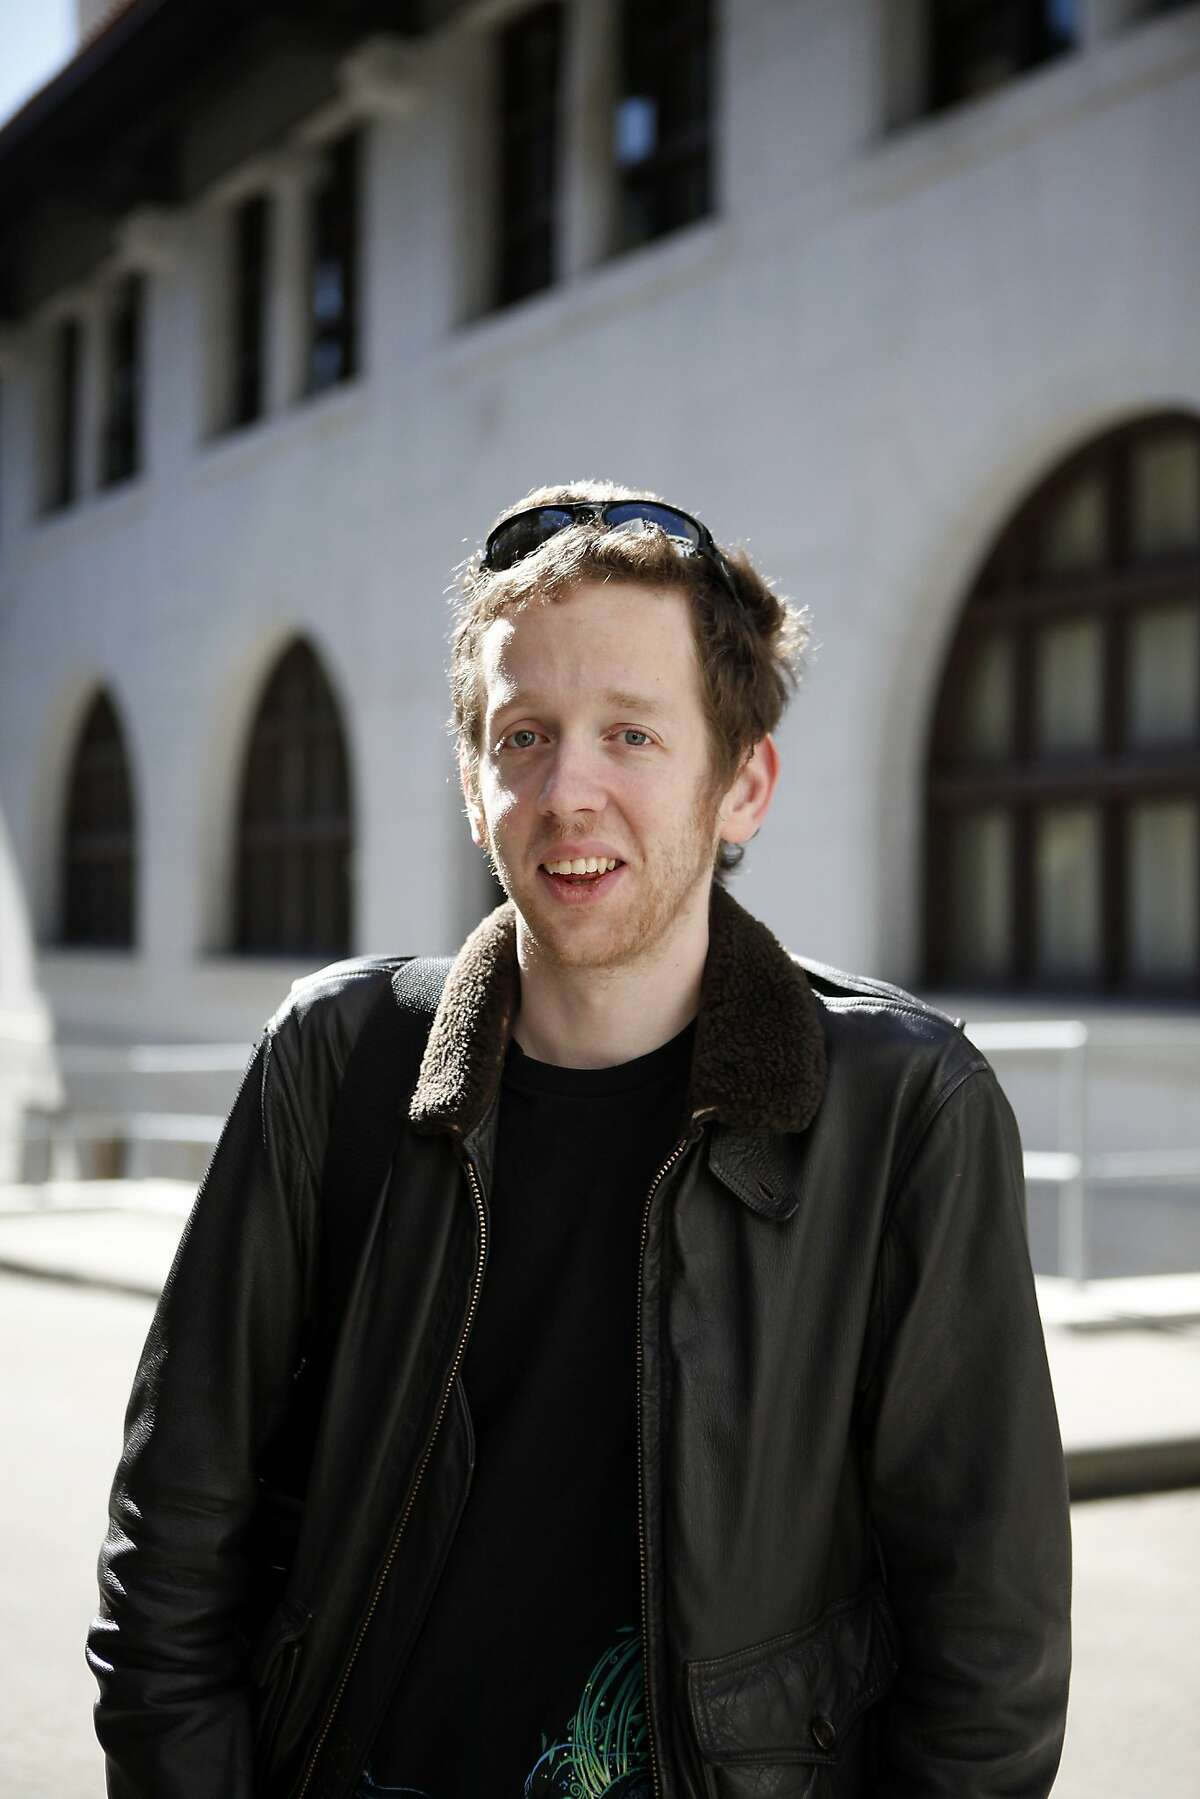 Kevin Gorman, UC Berkeley's new